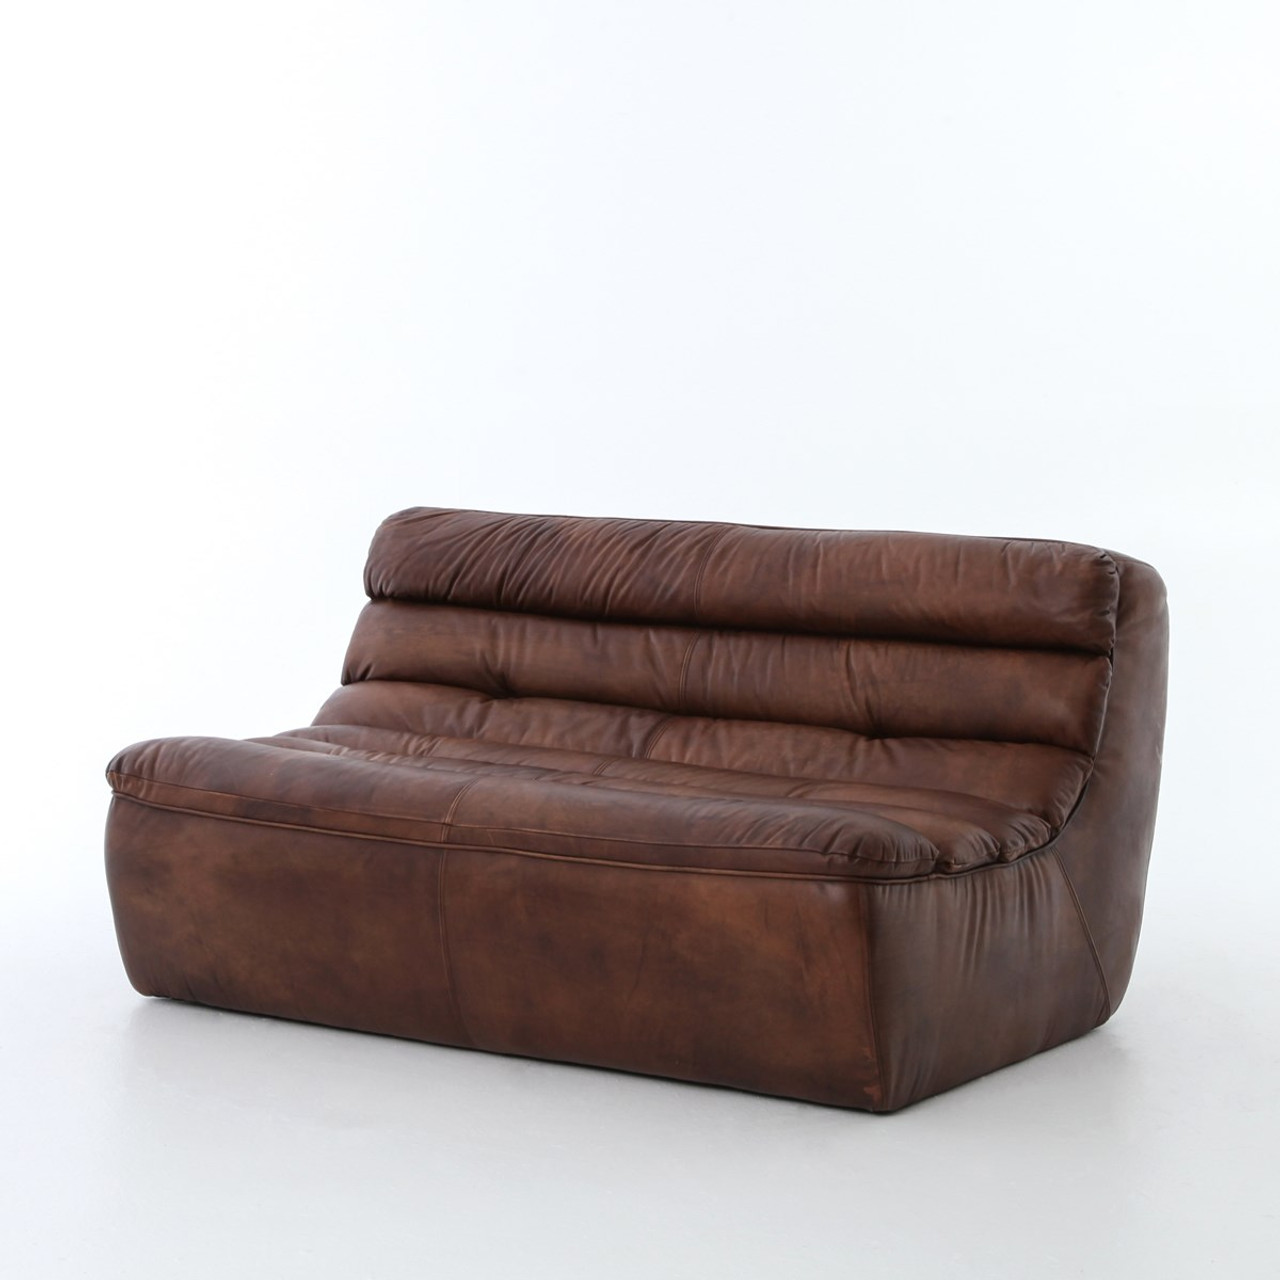 Magna Antique Leather 2 Seater Armless Sofa | Zin Home